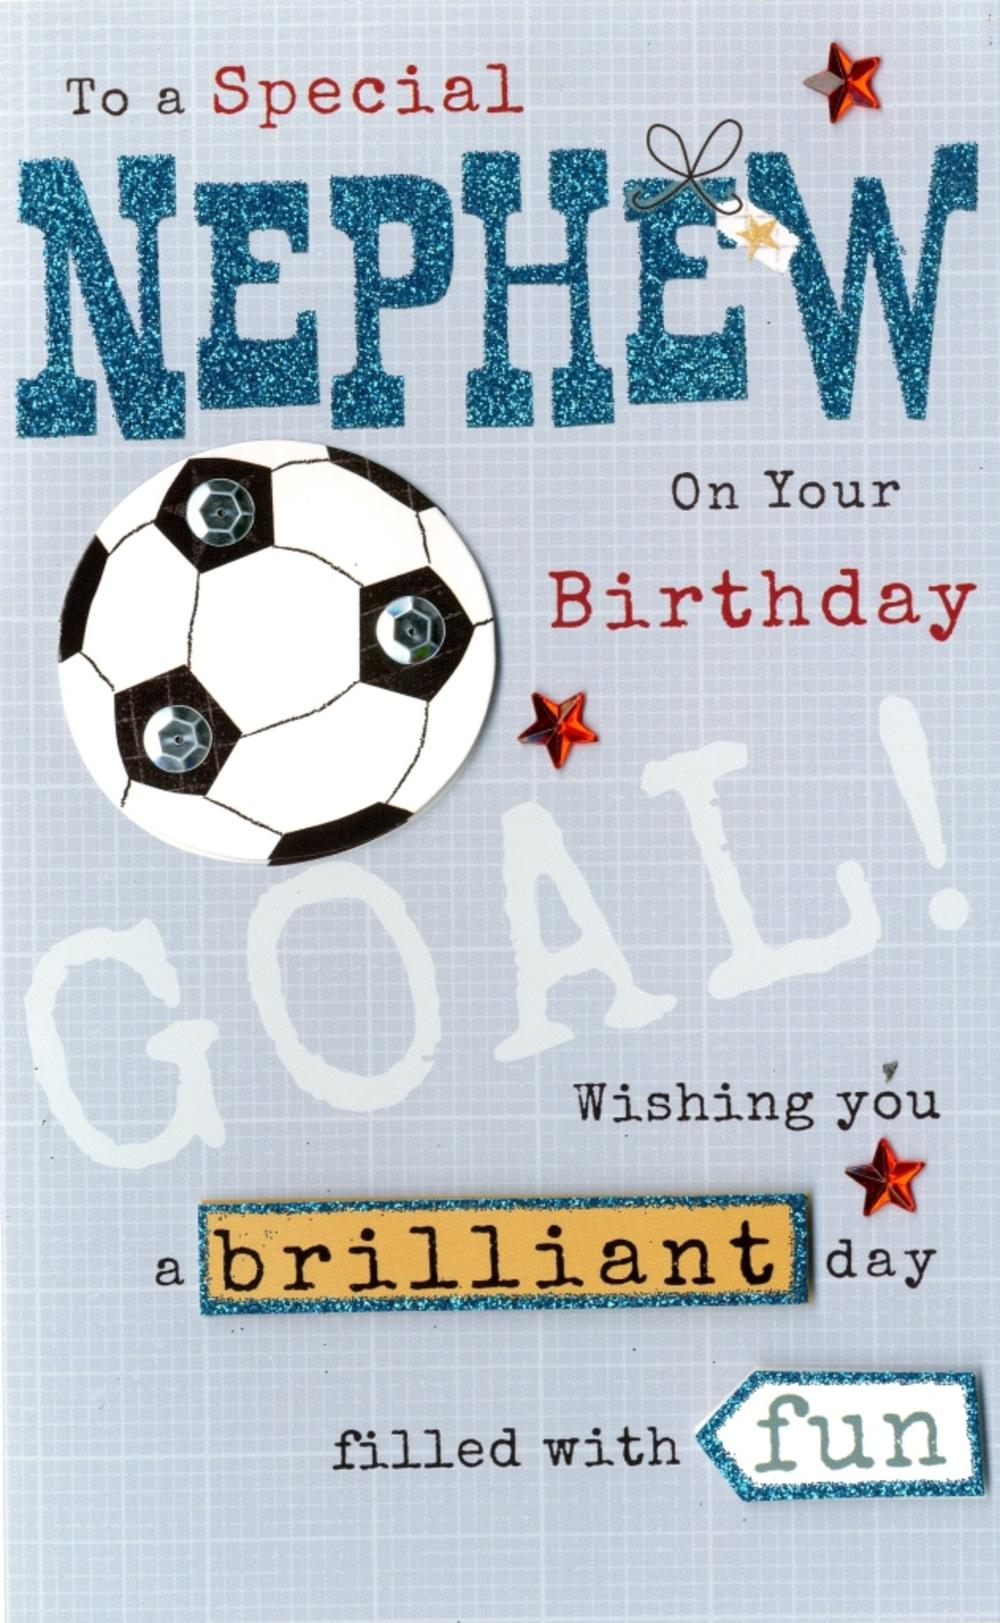 Happy Birthday Nephew Embellished Greeting Card Cards Love Kates